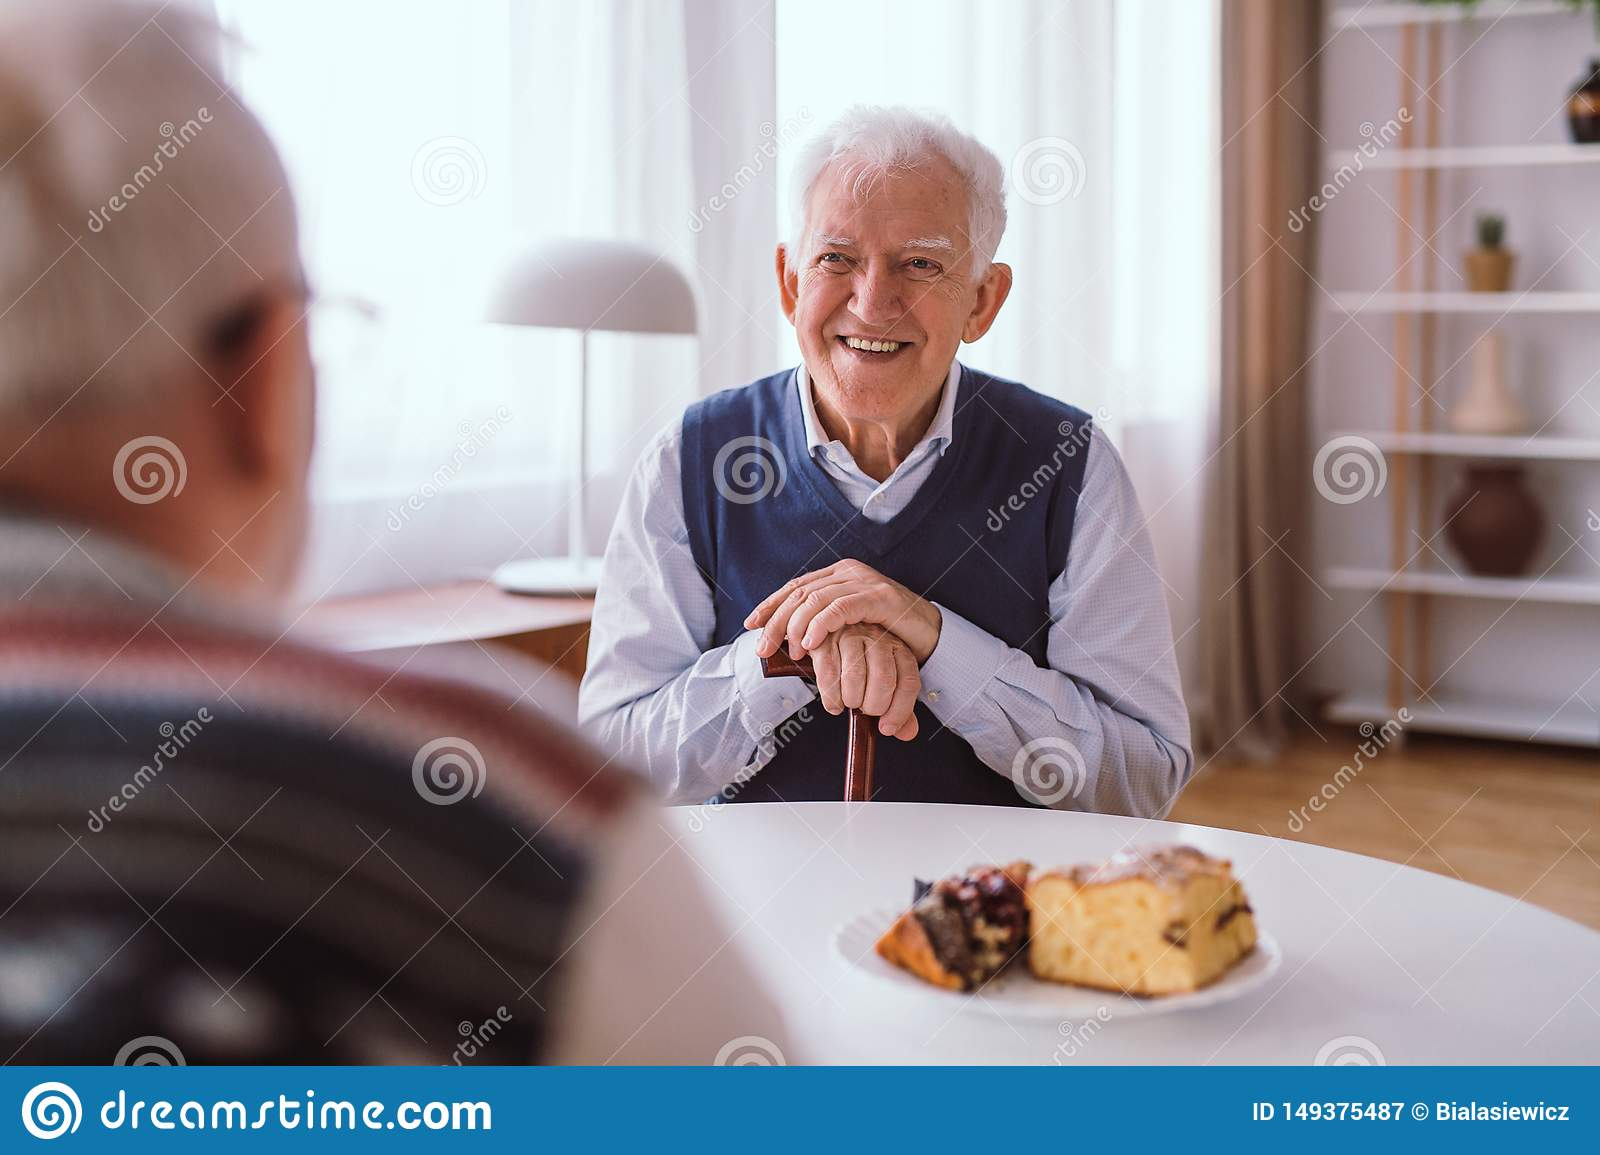 Happy senior man laughing with his old friend over the piece of cake